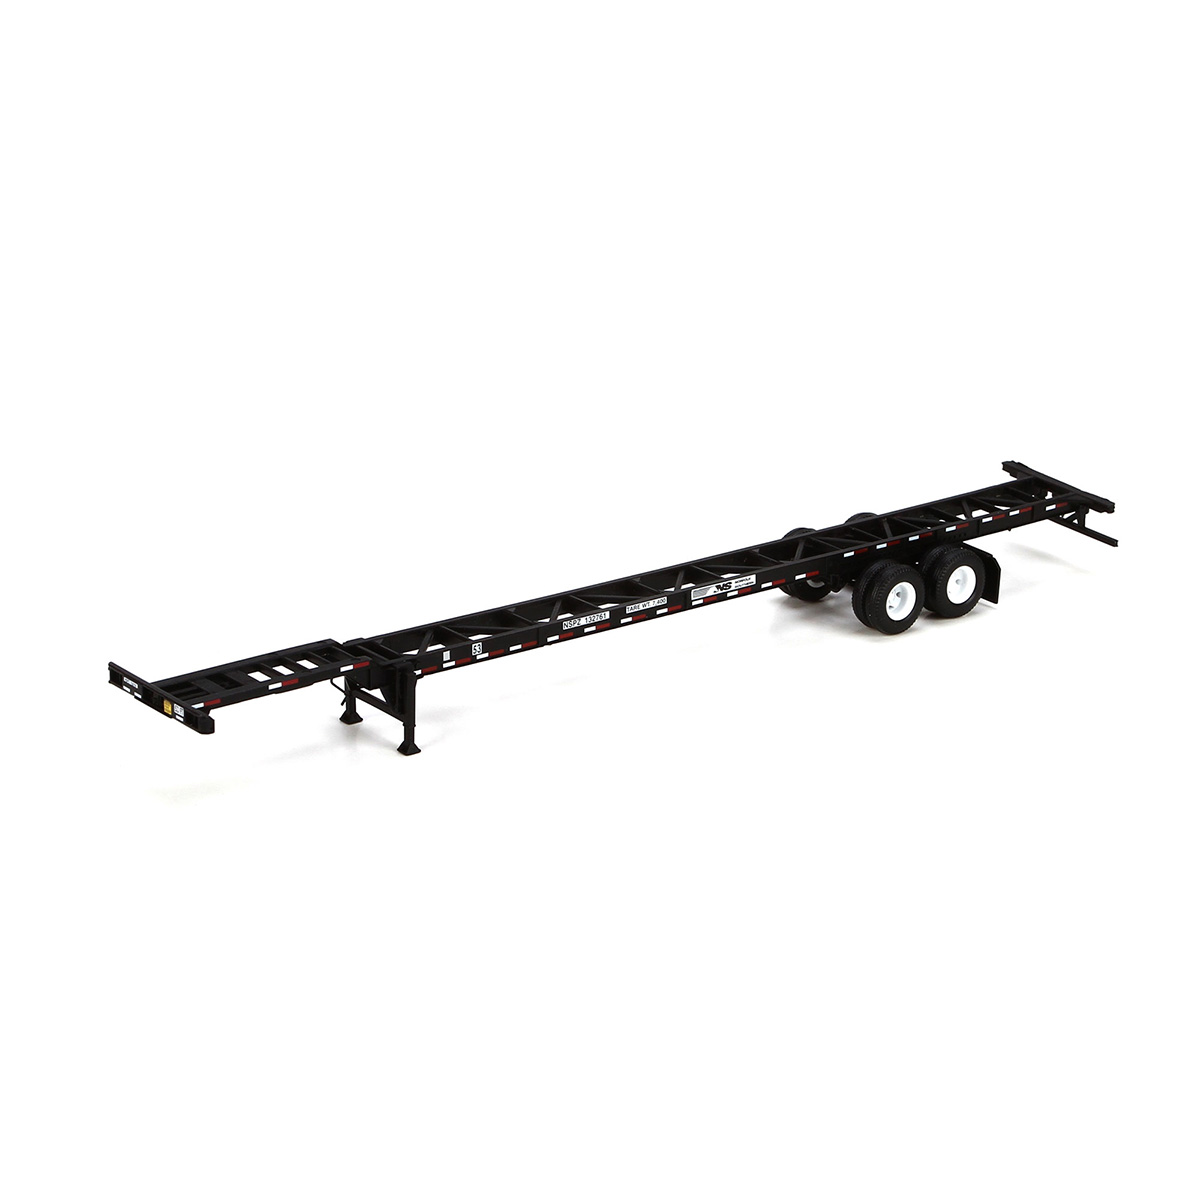 Athearn Ready To Roll ATH26593 HO 53' Container Chassis 2 Pack, NS